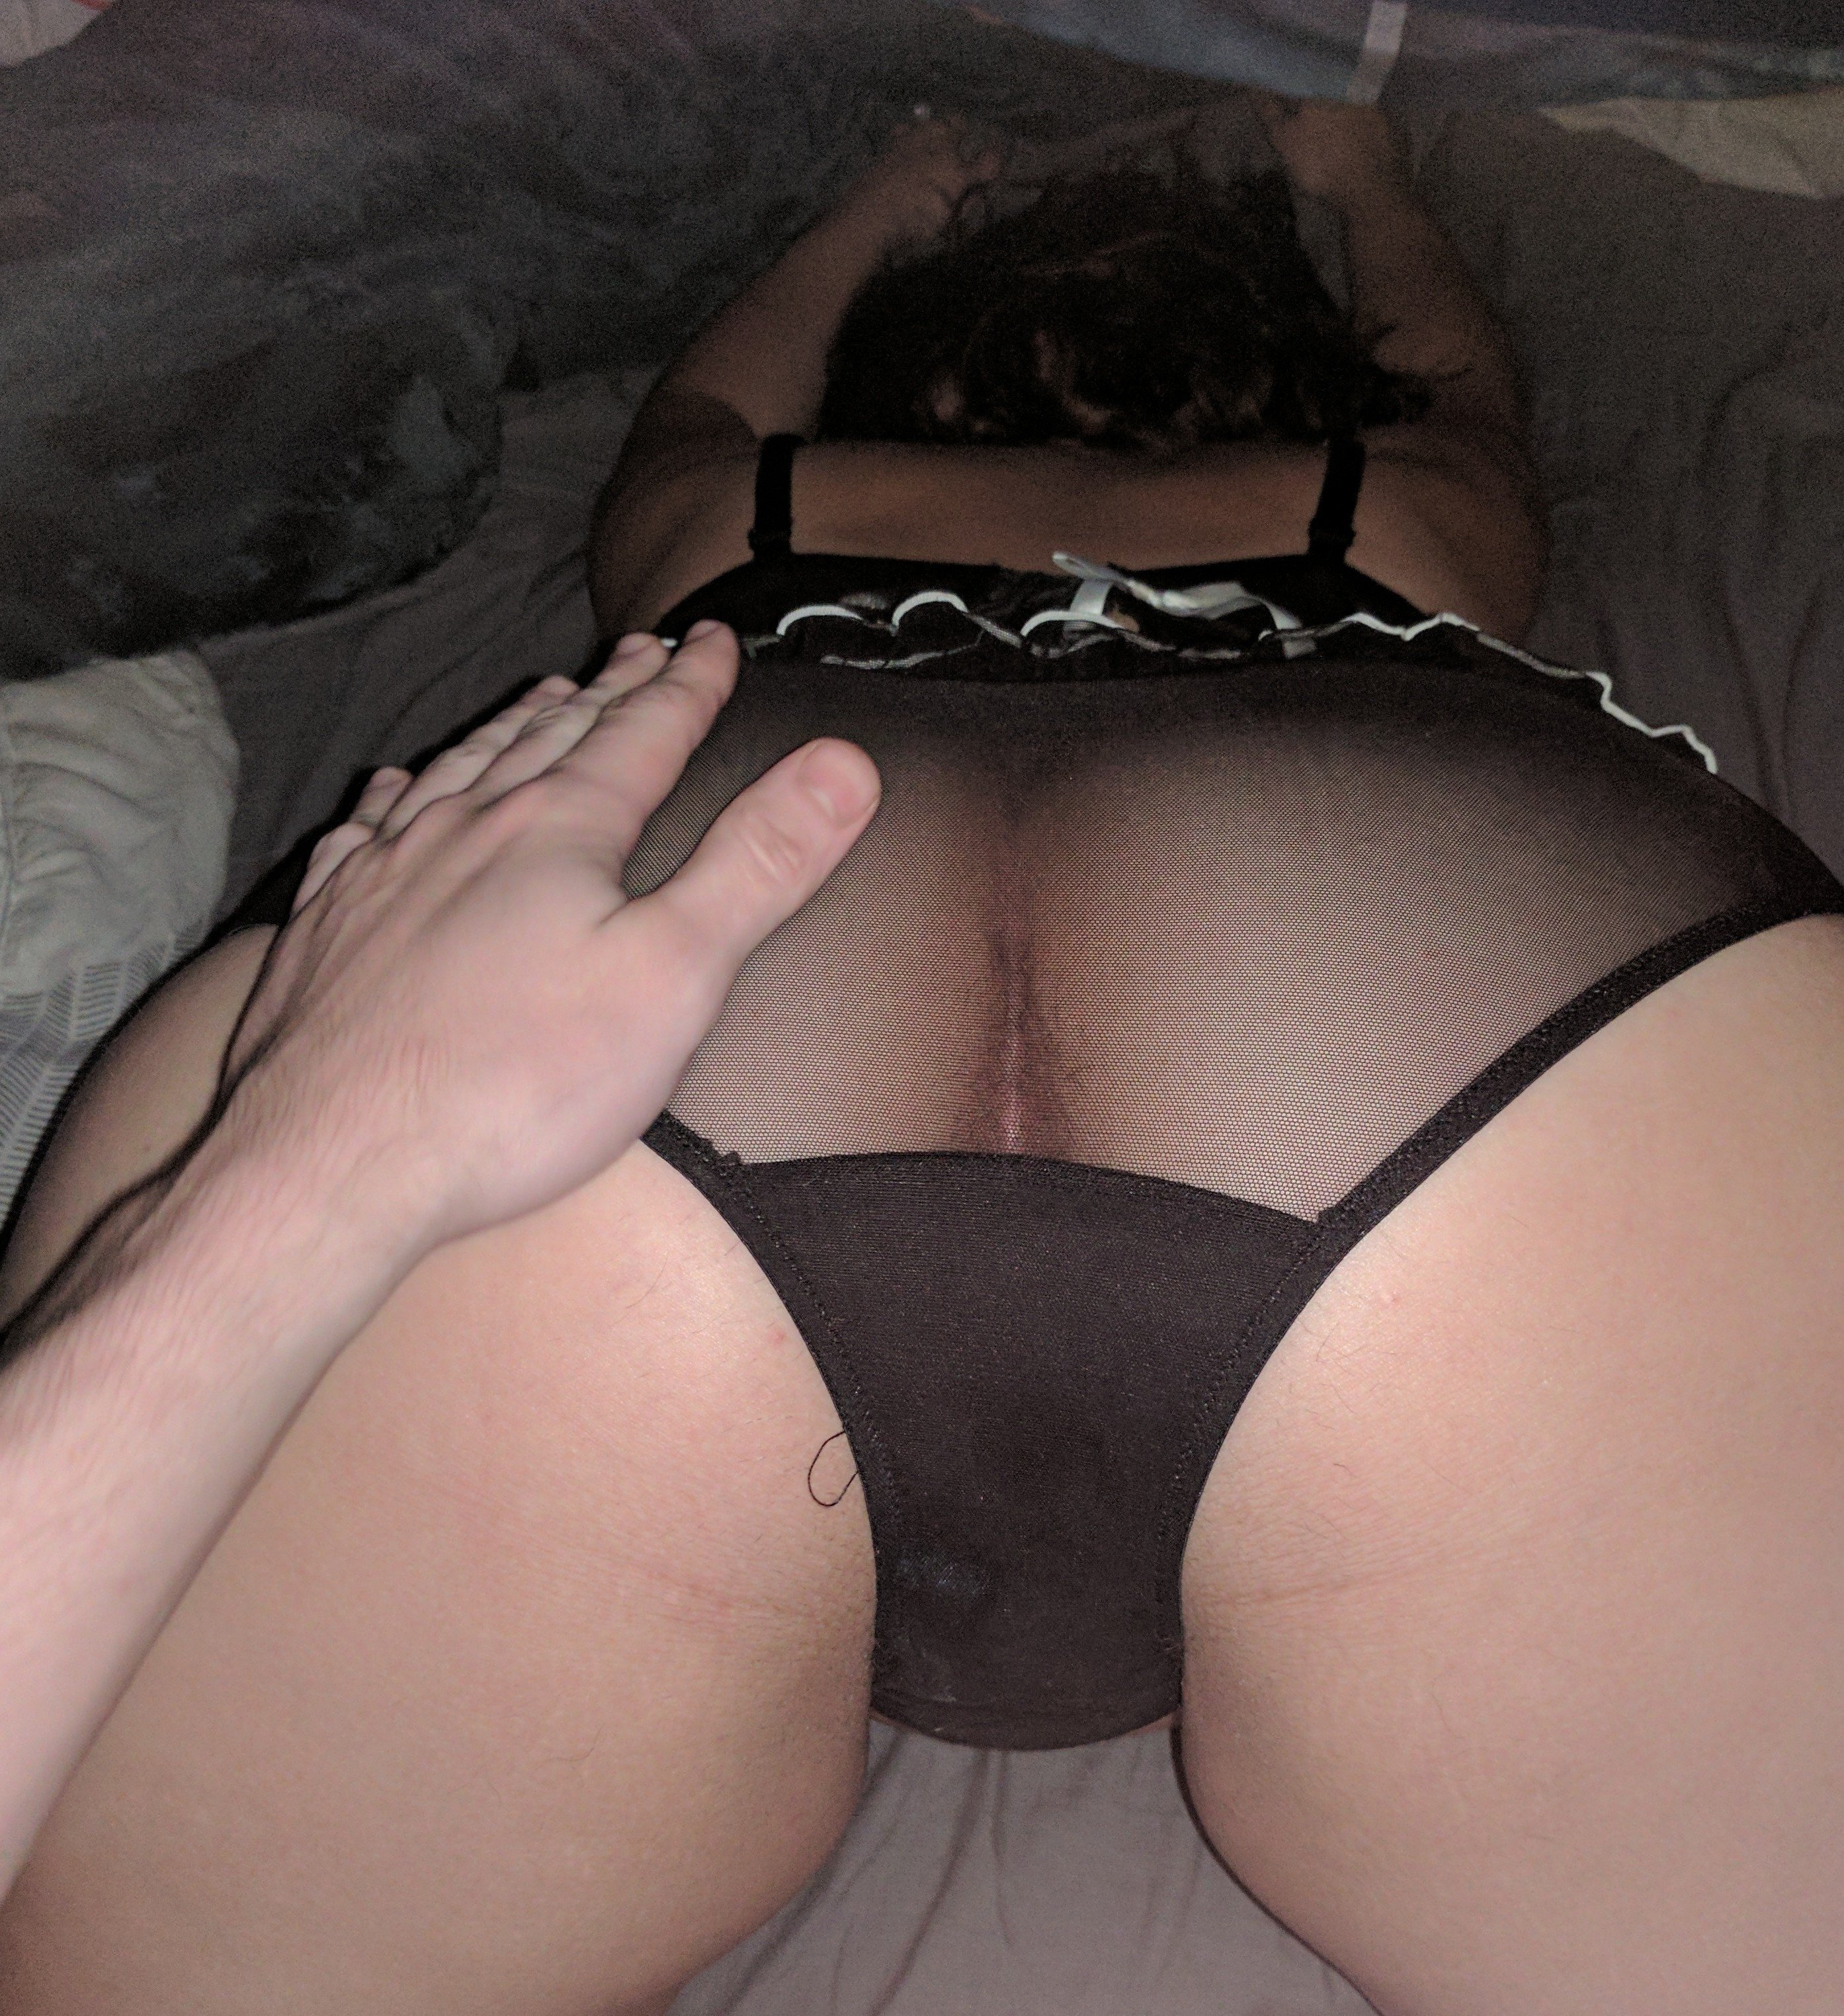 best of maid sex old man